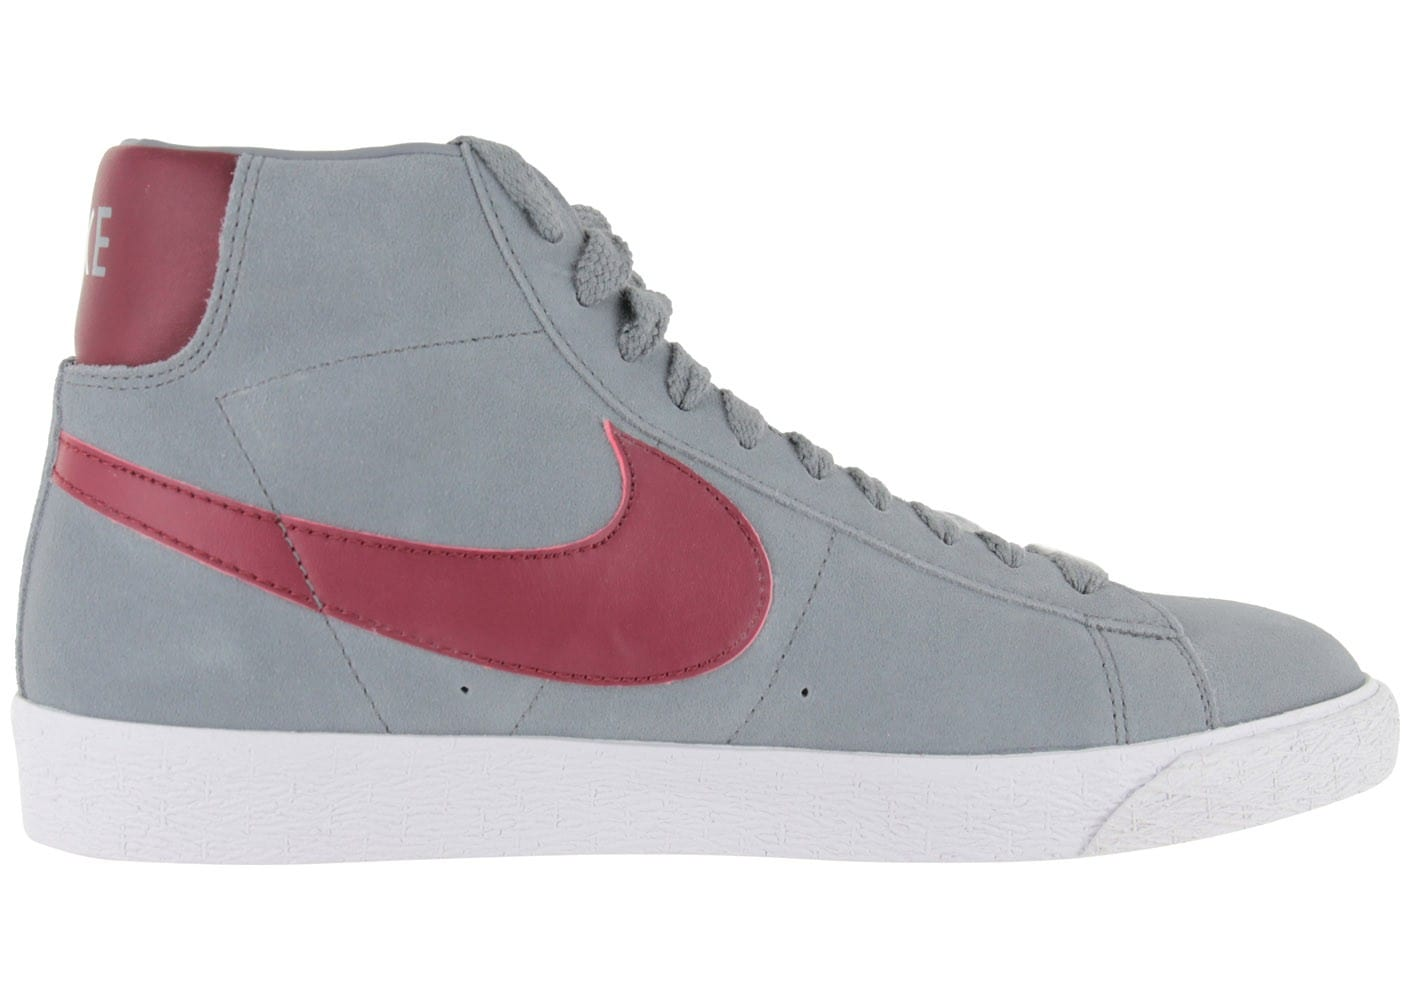 nike blazer grise rouge chaussures homme chausport. Black Bedroom Furniture Sets. Home Design Ideas